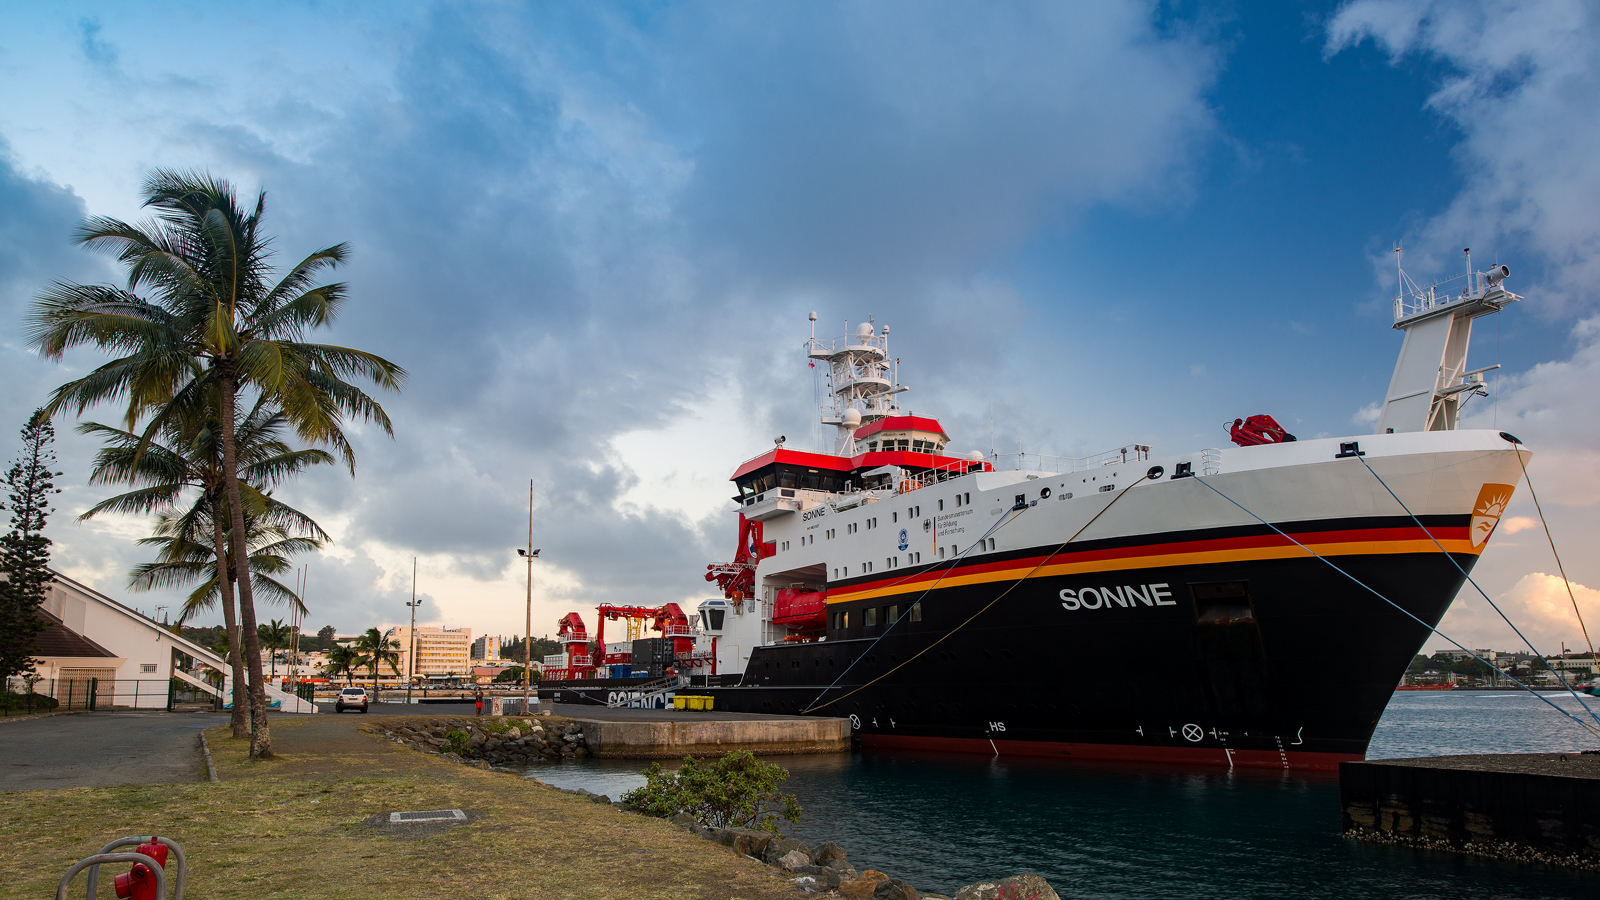 RV Sonne in the harbour of Nouméa, New Caledonia prior to SO253.